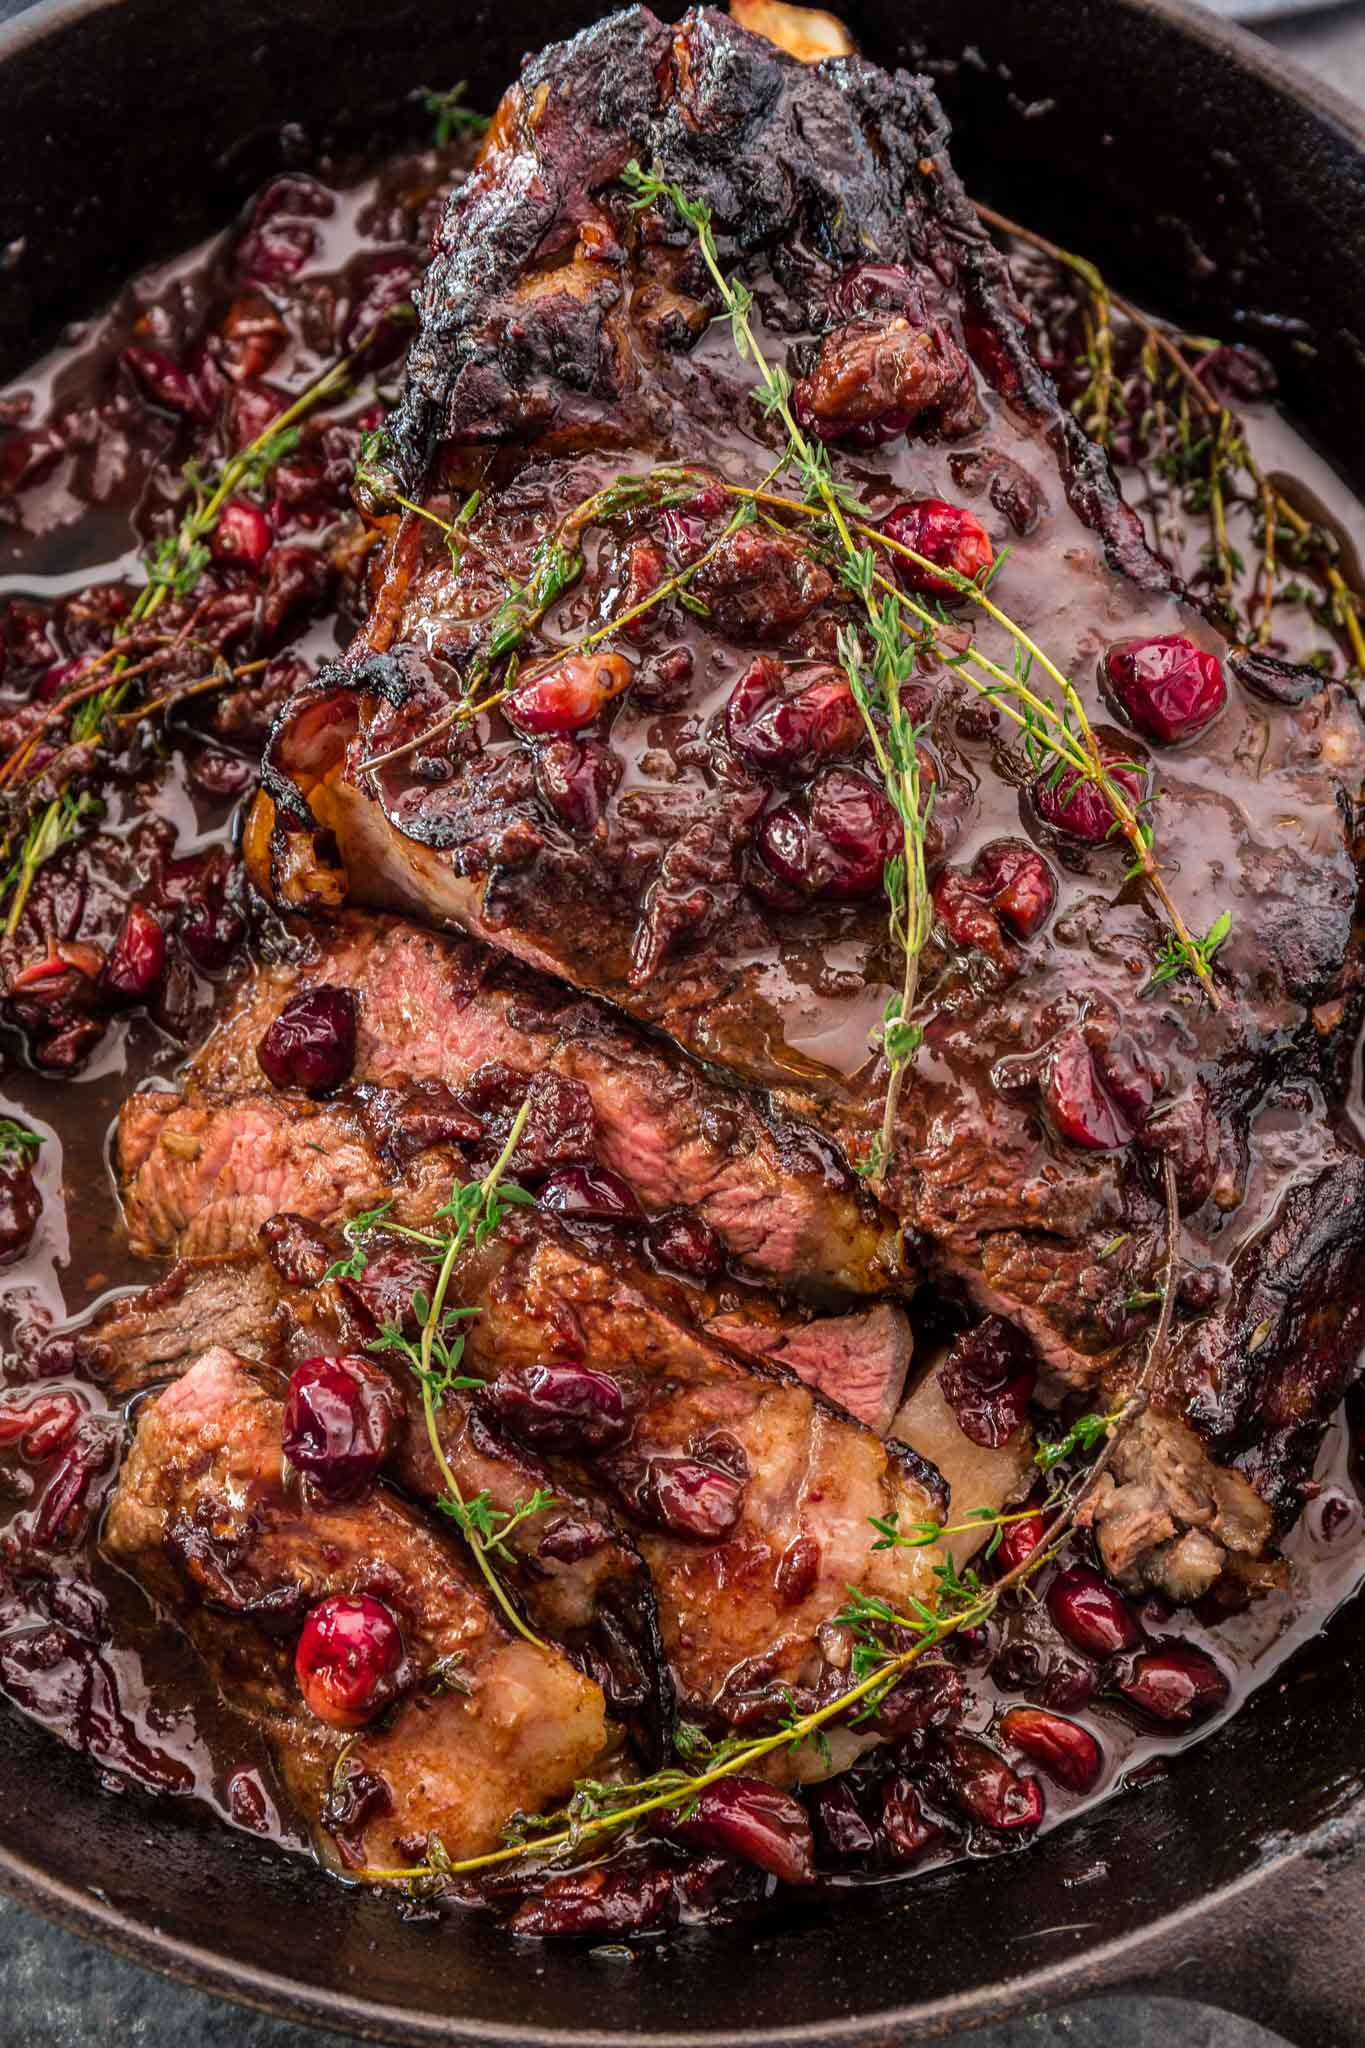 Cranberry Balsamic Roast Beef   www.oliviascuisine.com   This holiday season, impress your guests with this delicious Cranberry Balsamic Roast Beef! A little tangy, a little sweet and a whole lot of mouthwatering. Perfect to feed a crowd!